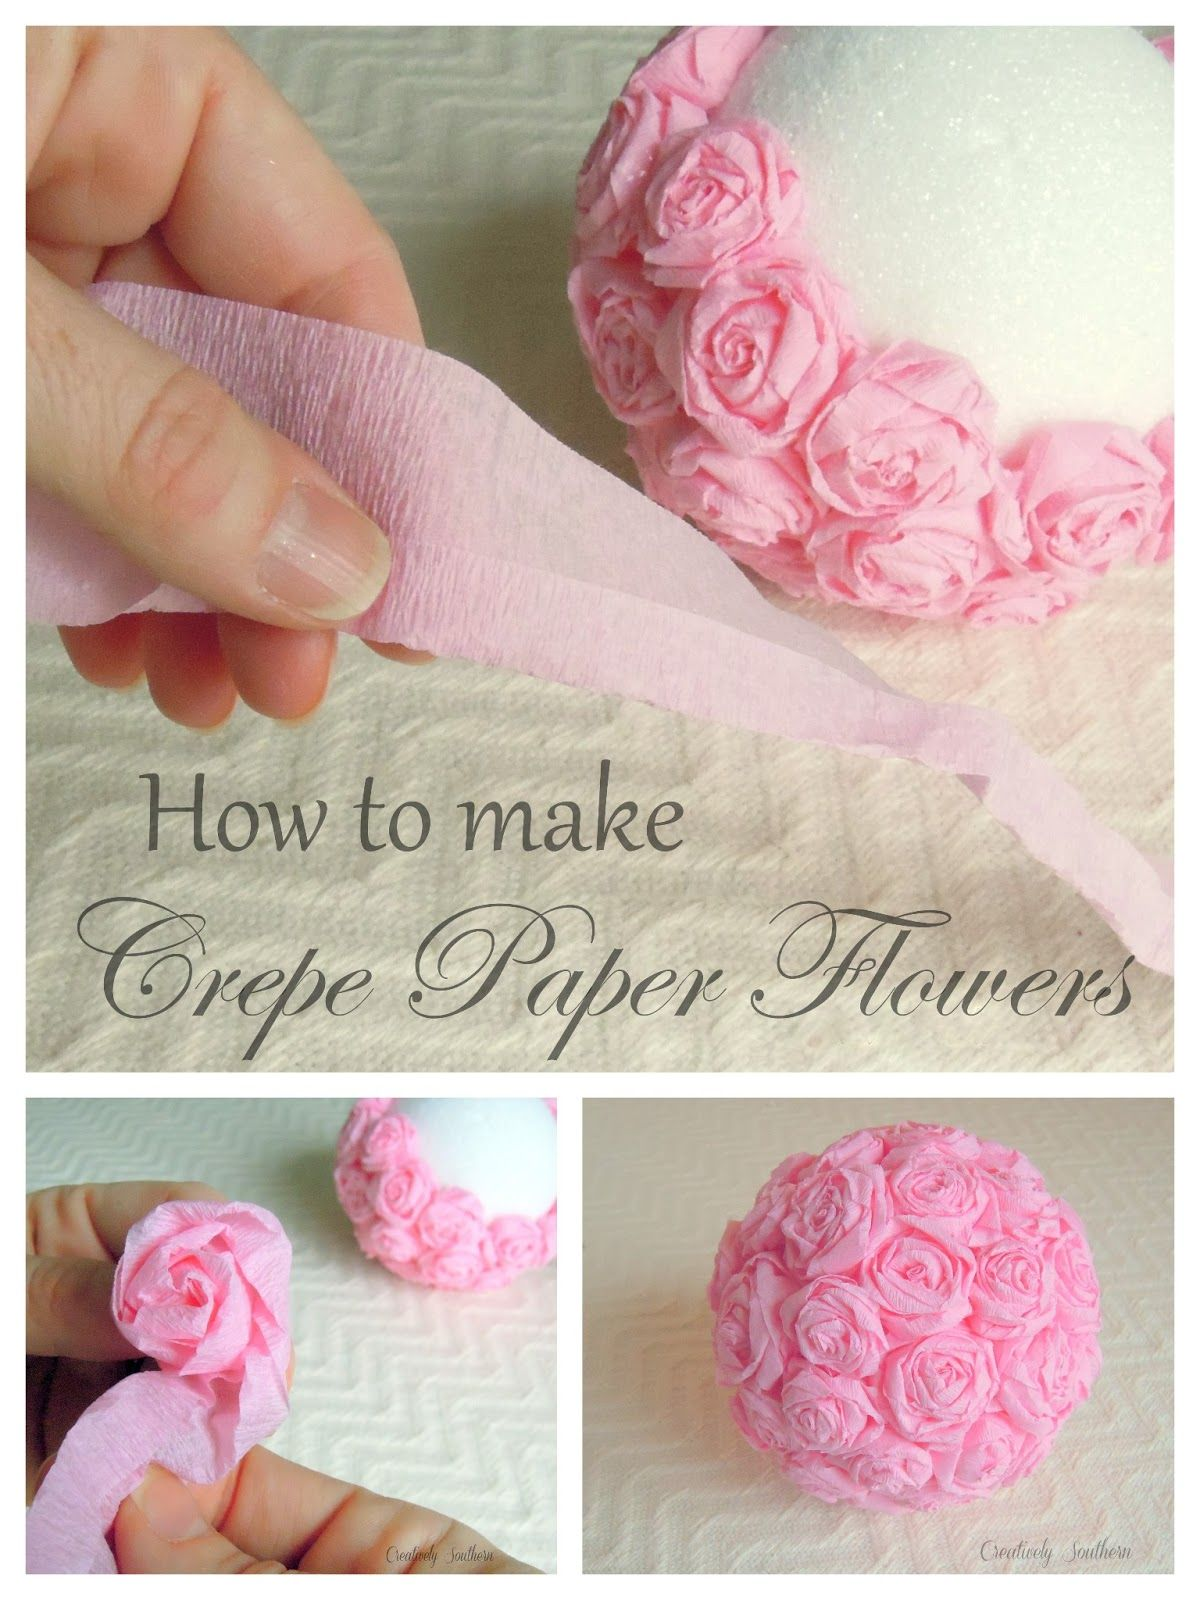 Crepe paper flowers craft idea craft ideas pinterest paper crepe paper flowers for an elegant craft idea i would like to do these for the bridesmaids in lavender though mightylinksfo